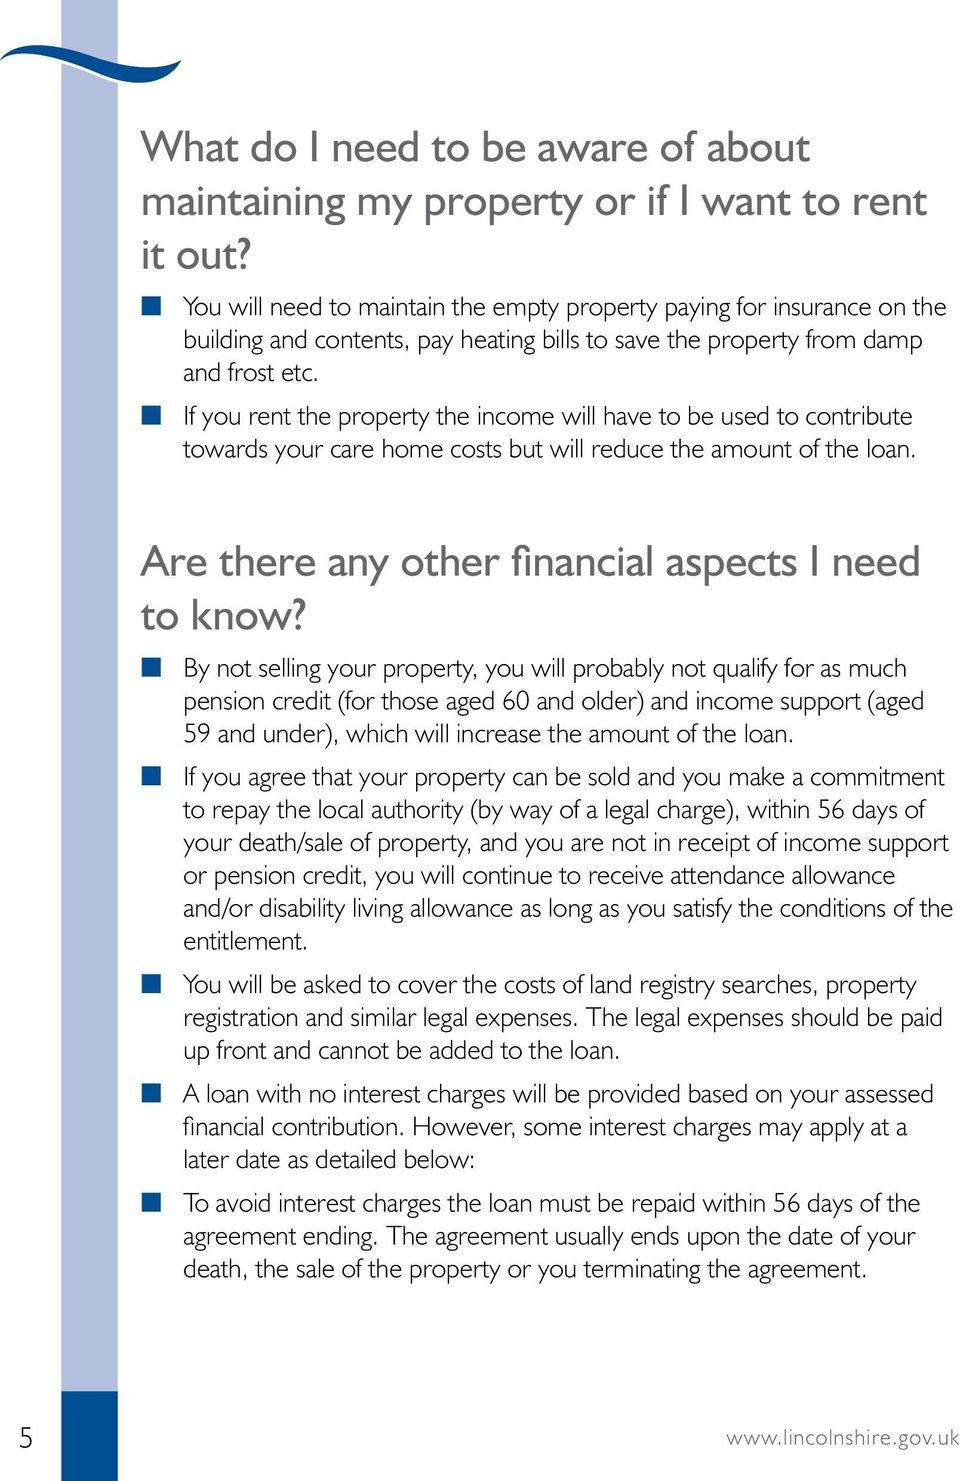 n If you rent the property the income will have to be used to contribute towards your care home costs but will reduce the amount of the loan. Are there any other financial aspects I need to know?